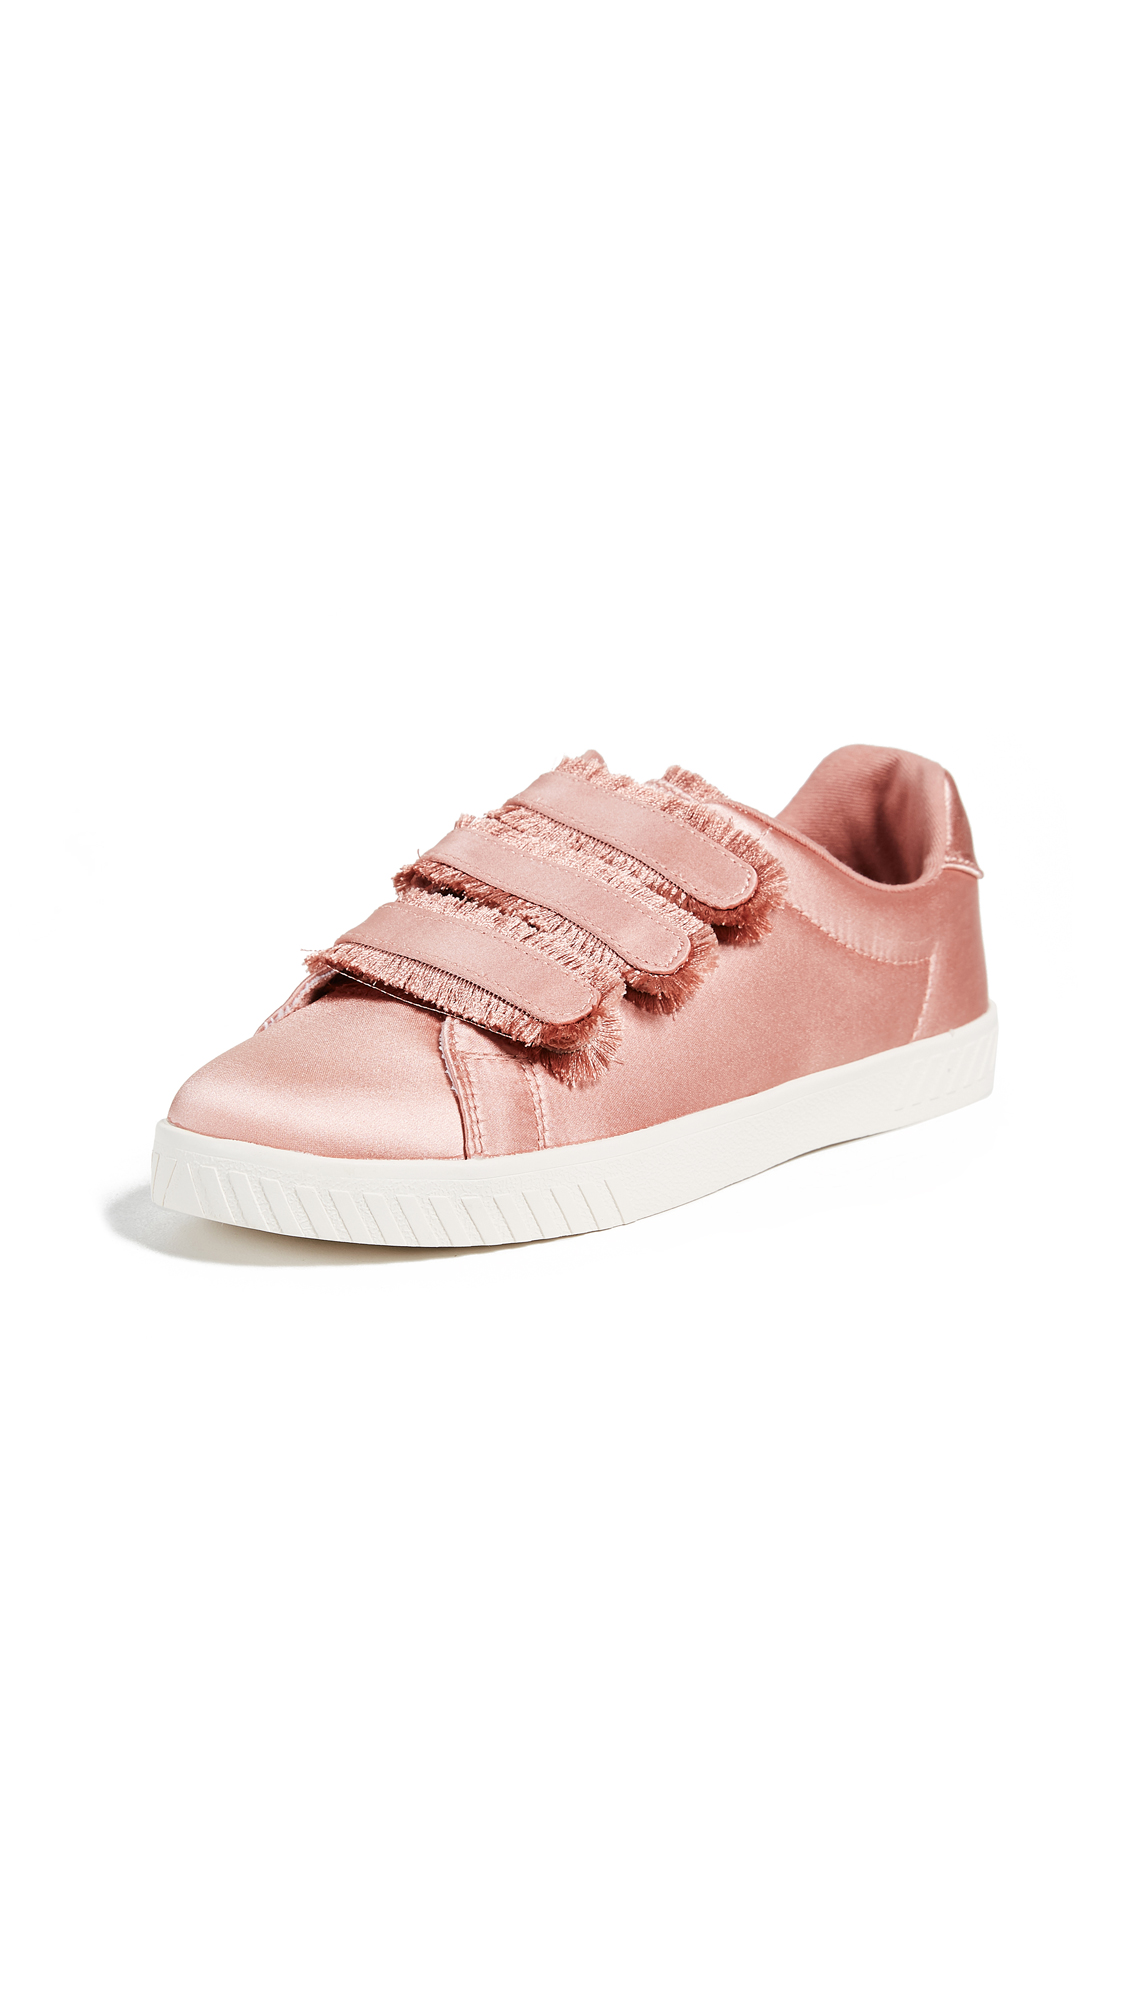 Tretorn Carry Fringe Velcro Sneakers - Salmon